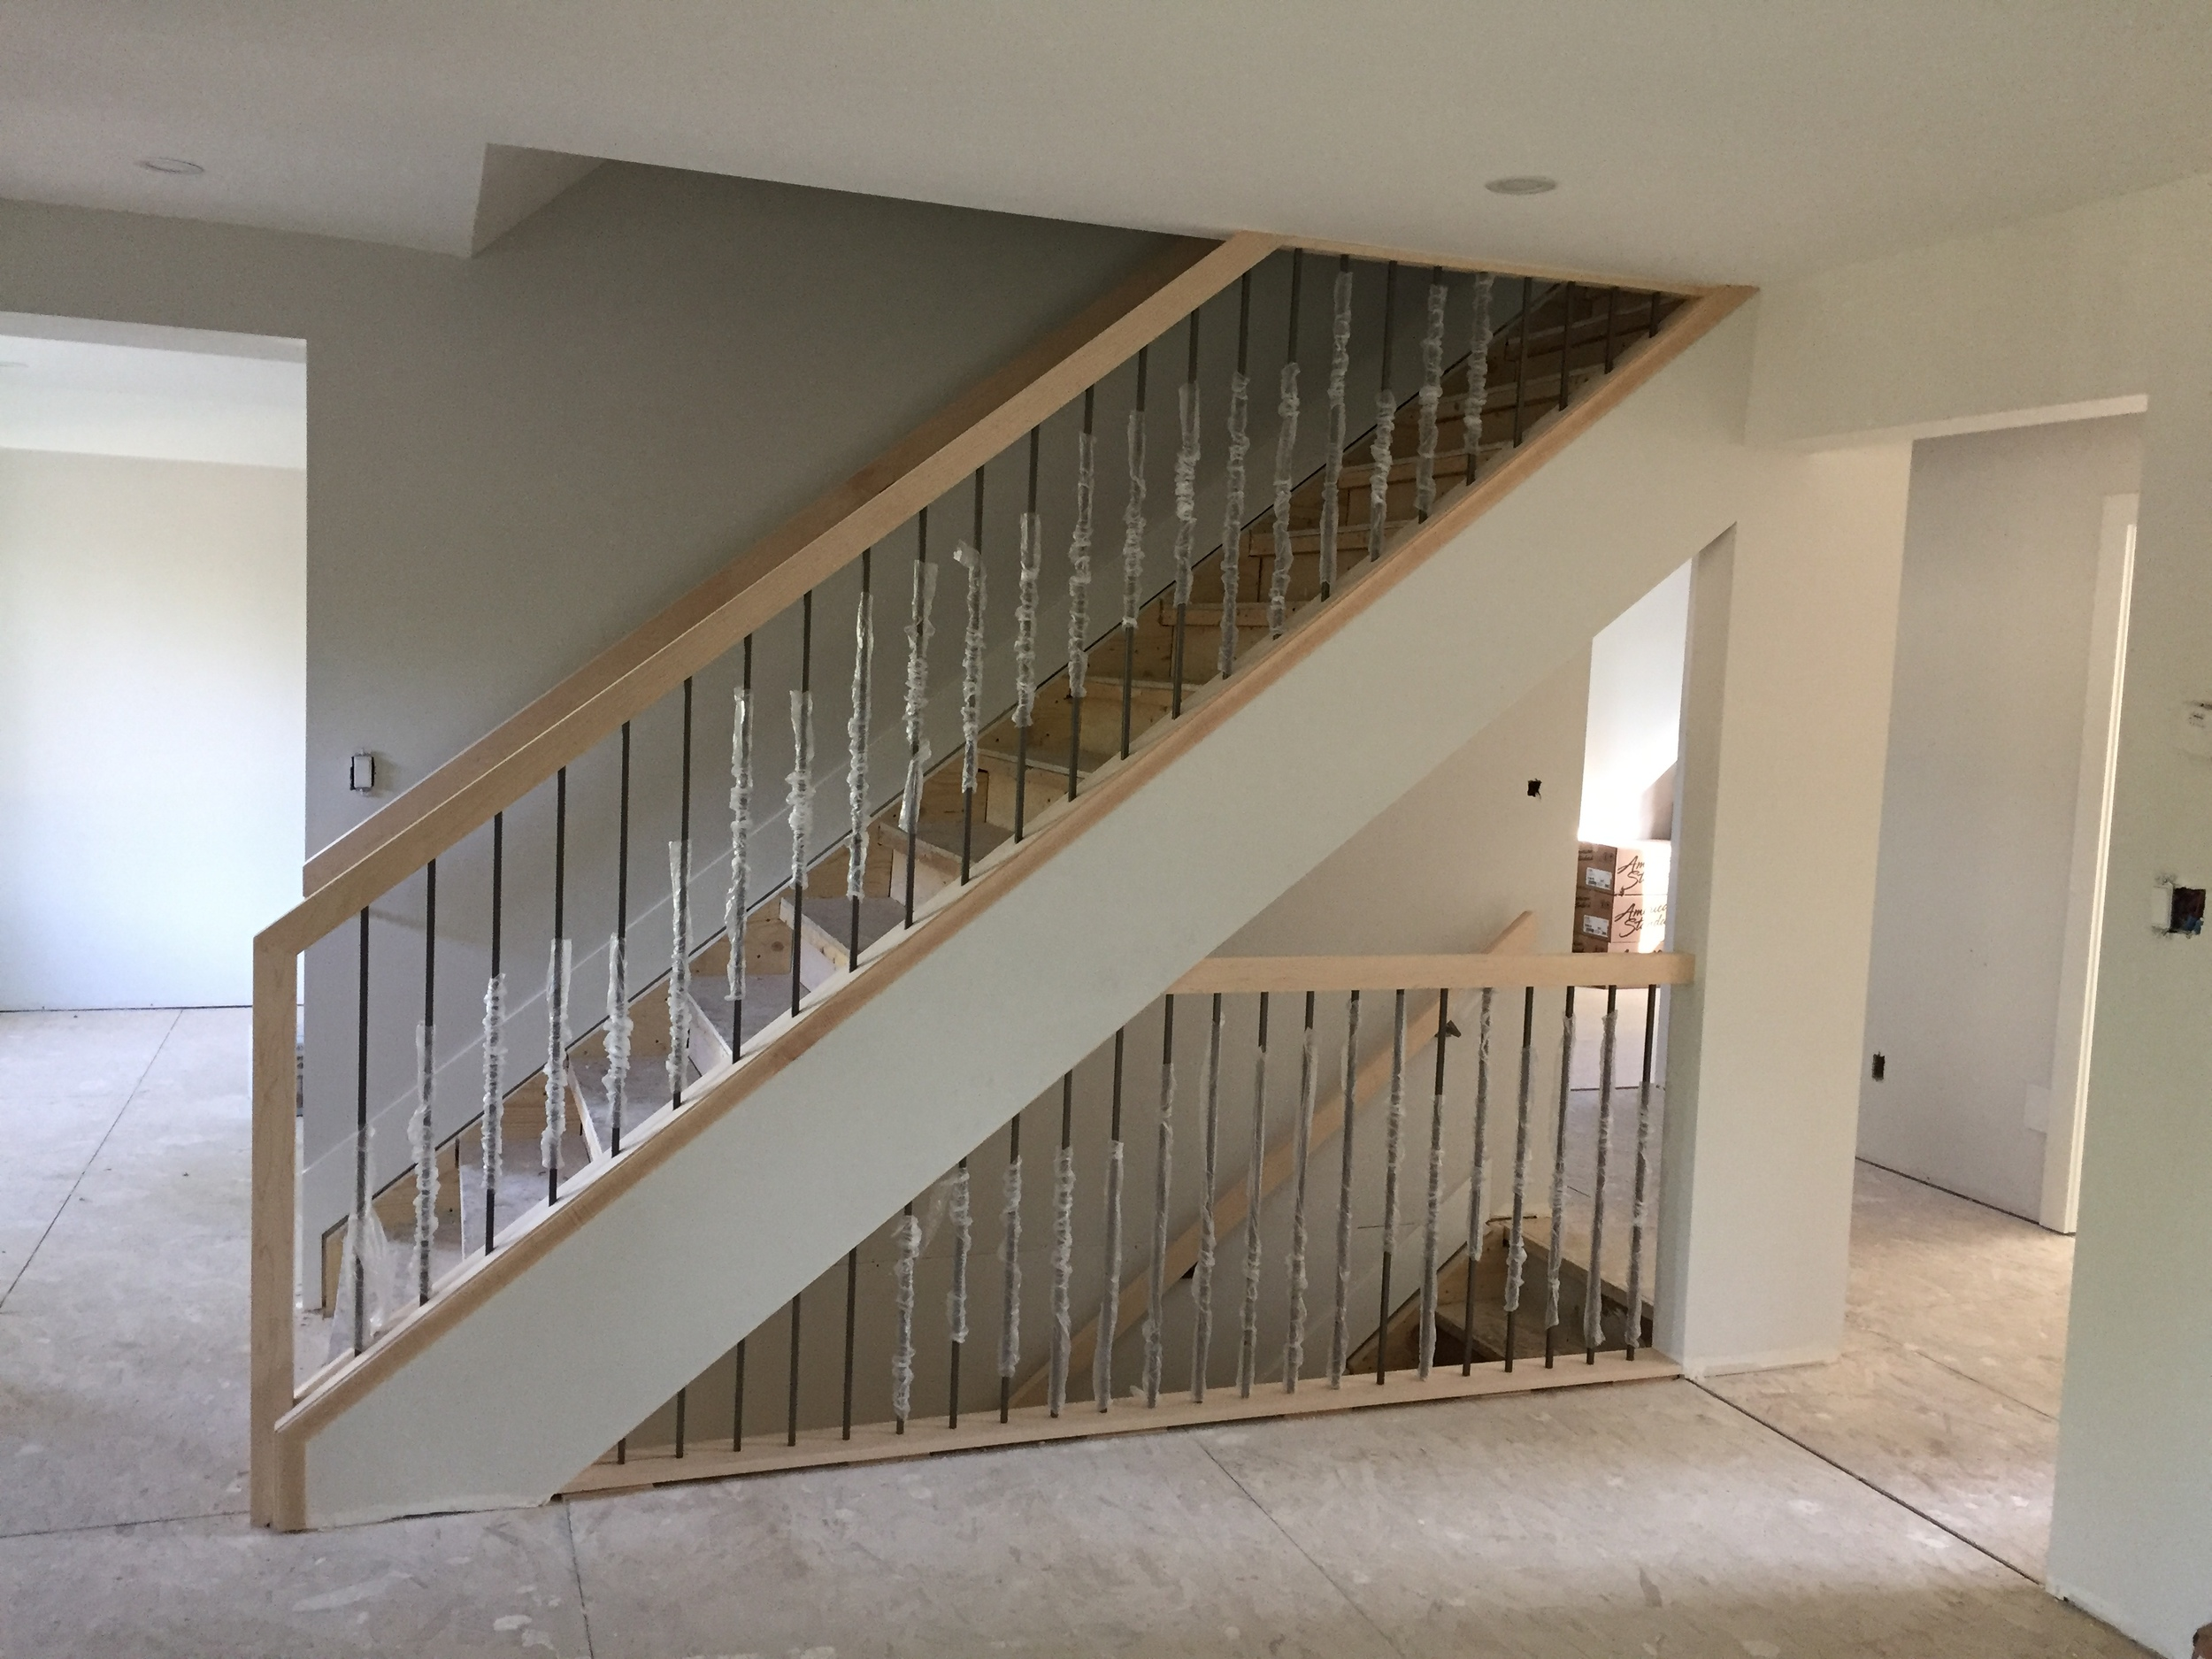 Stair Rail - New & waiting for stain